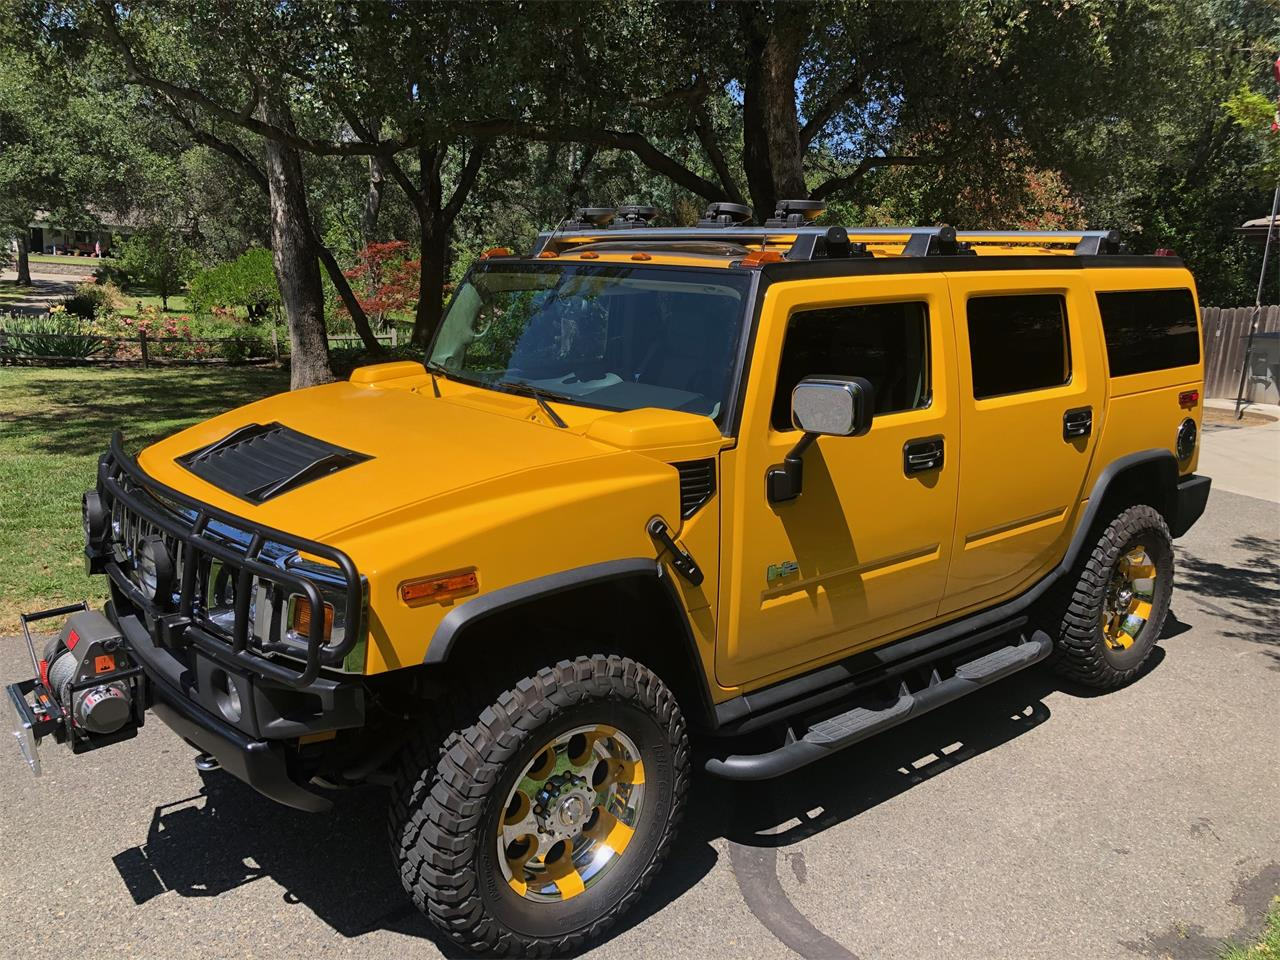 For Sale: 112 Hummer H12 in Granite Bay, California | h2 hummer for sale by owner